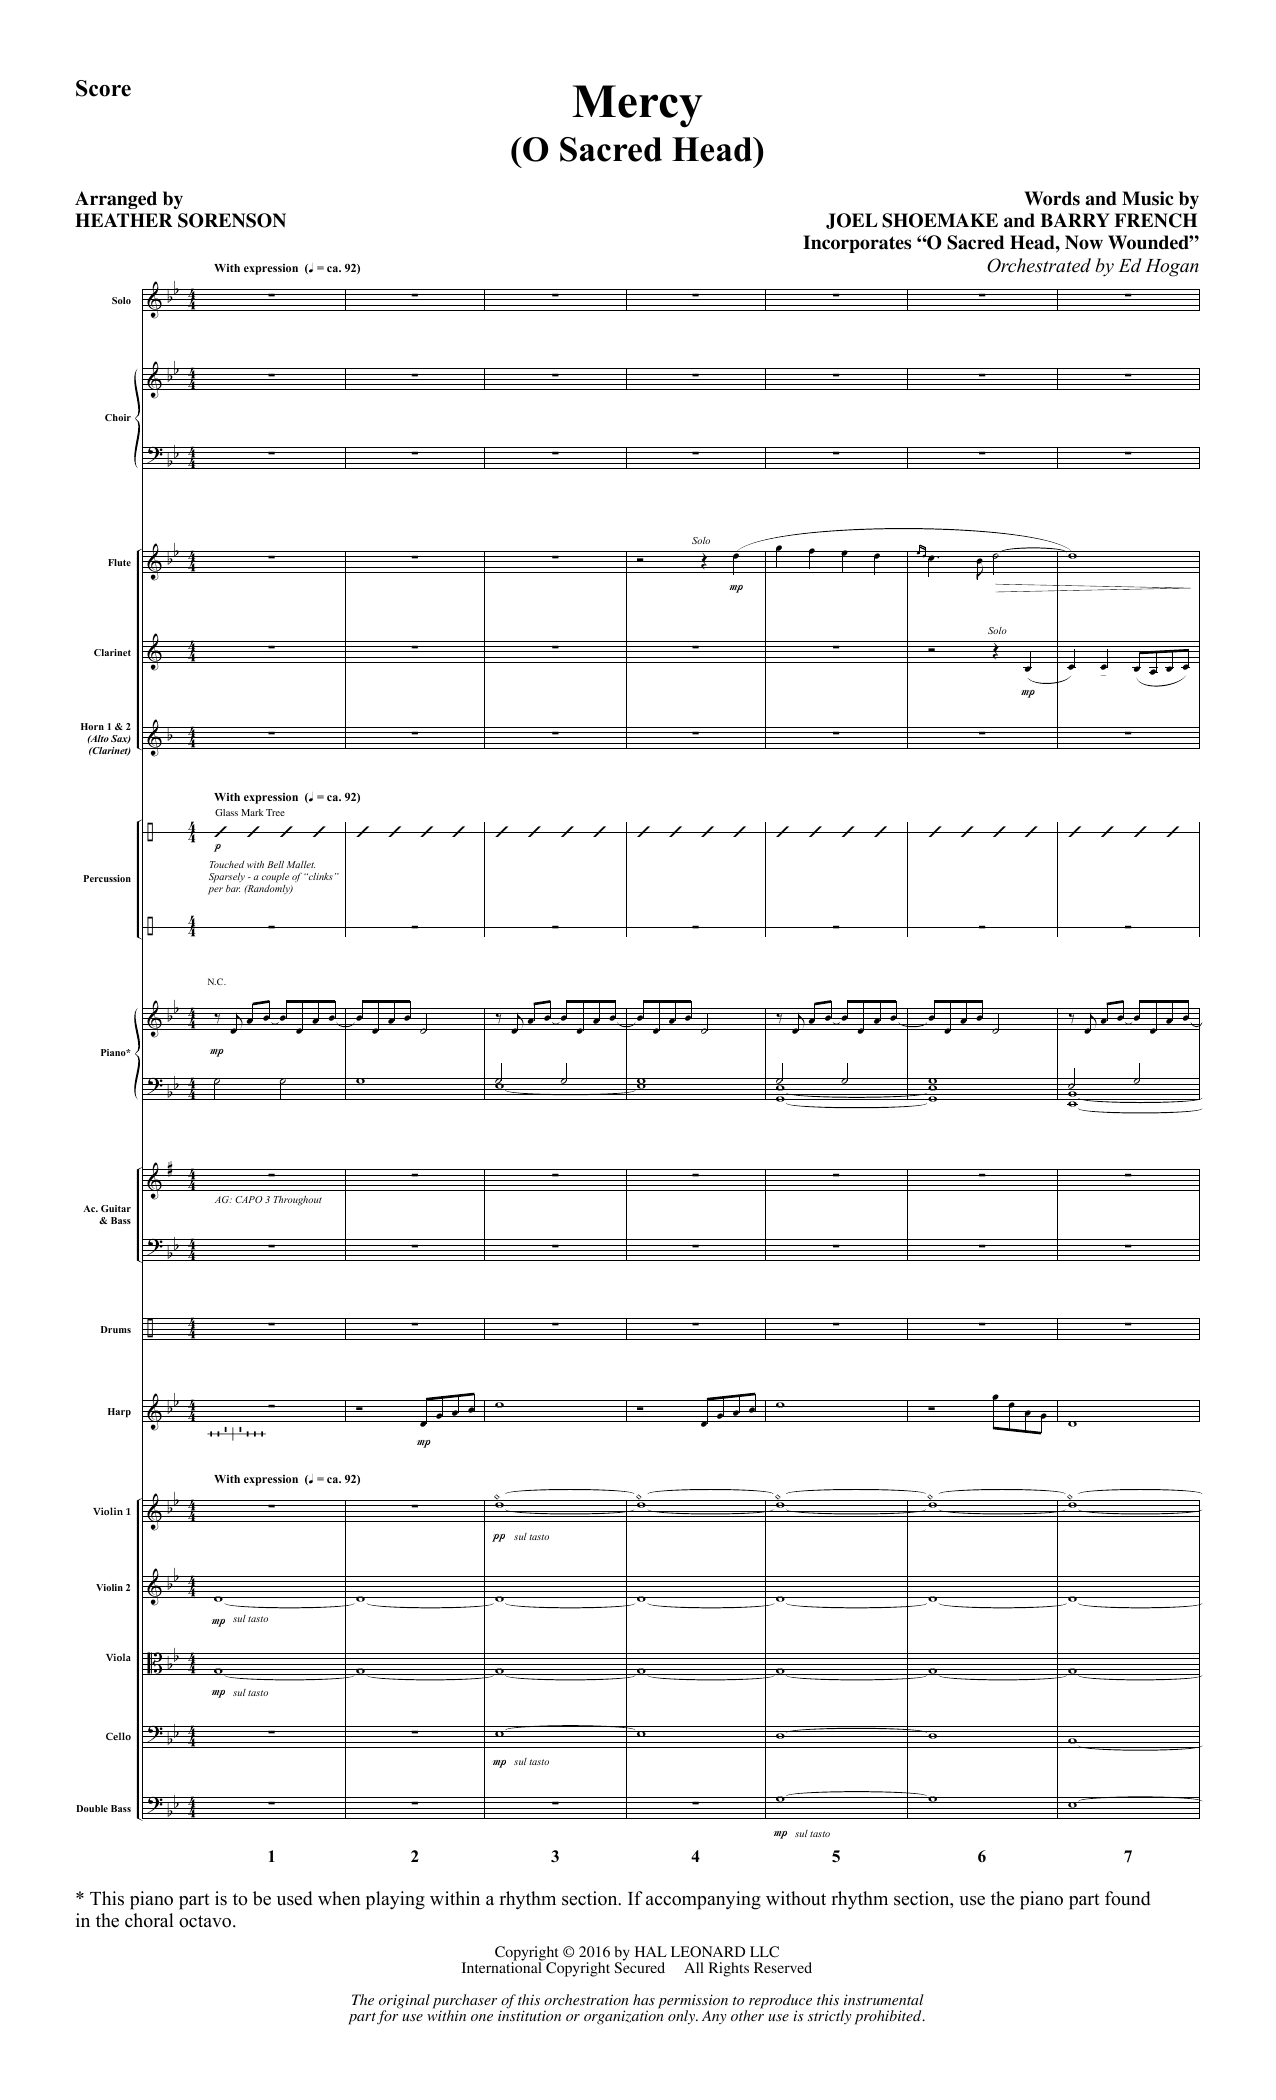 Mercy (O Sacred Head) - Full Score